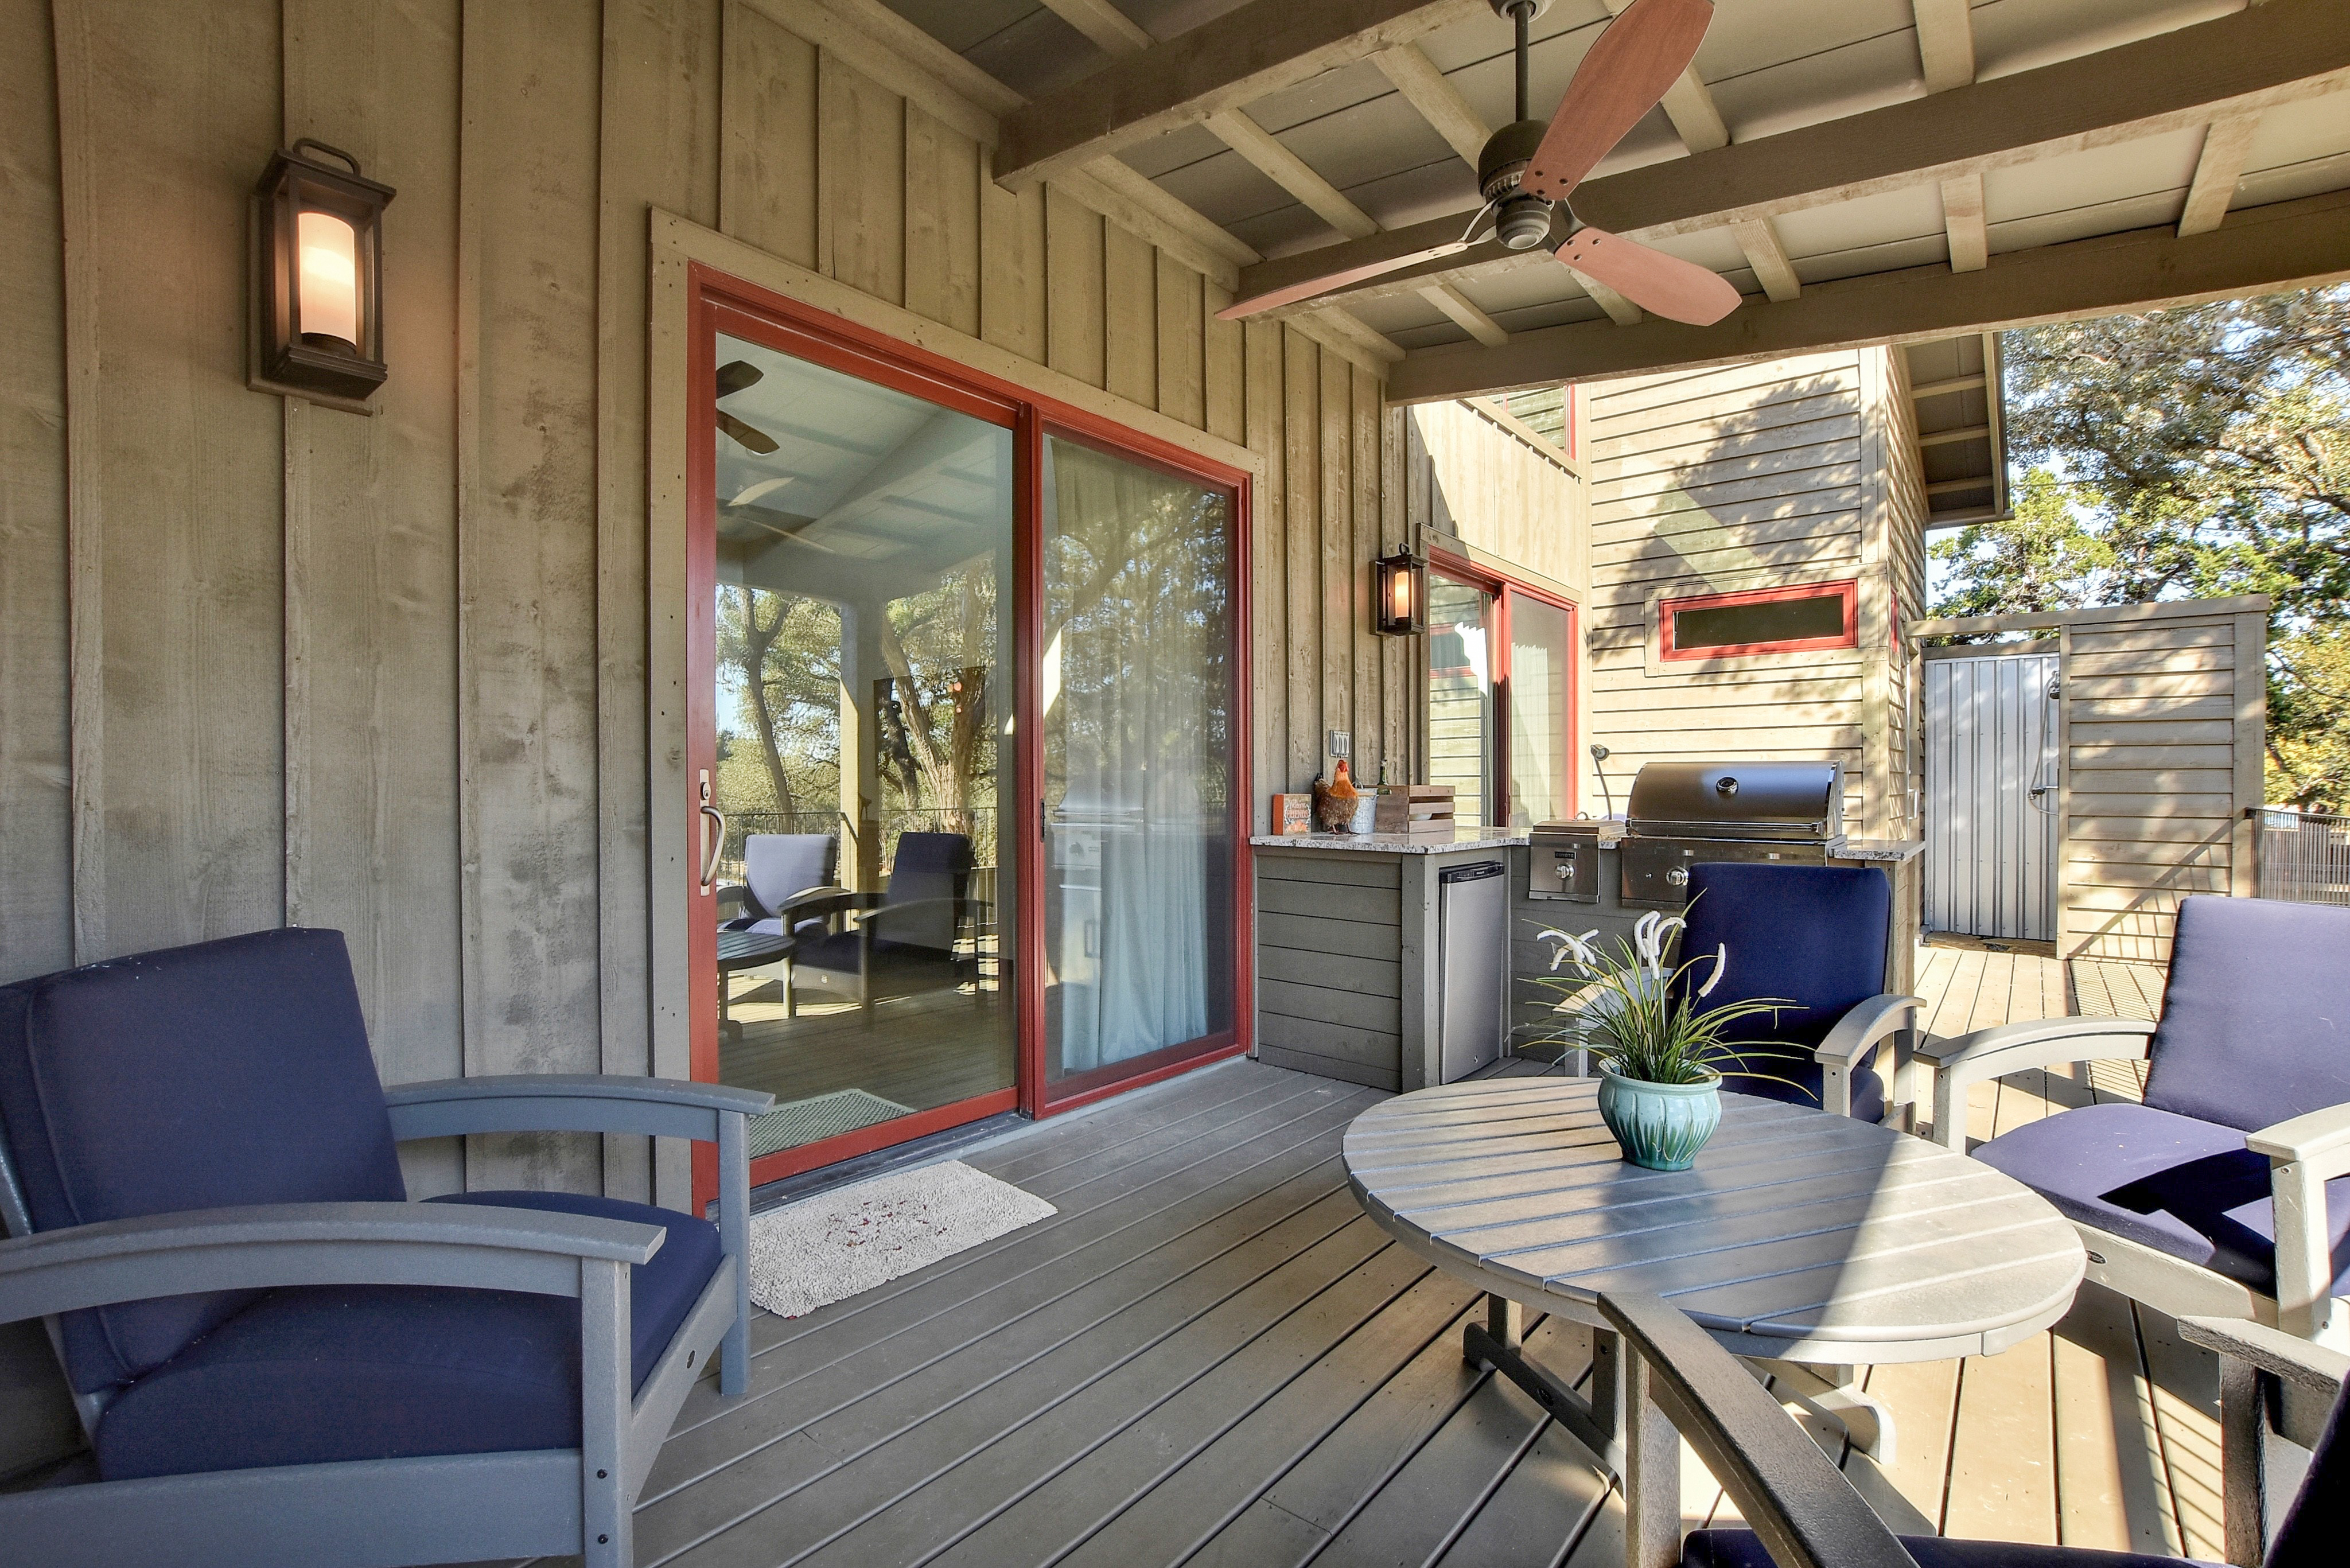 Spicewood TX Vacation Rental Welcome to Spicewood!